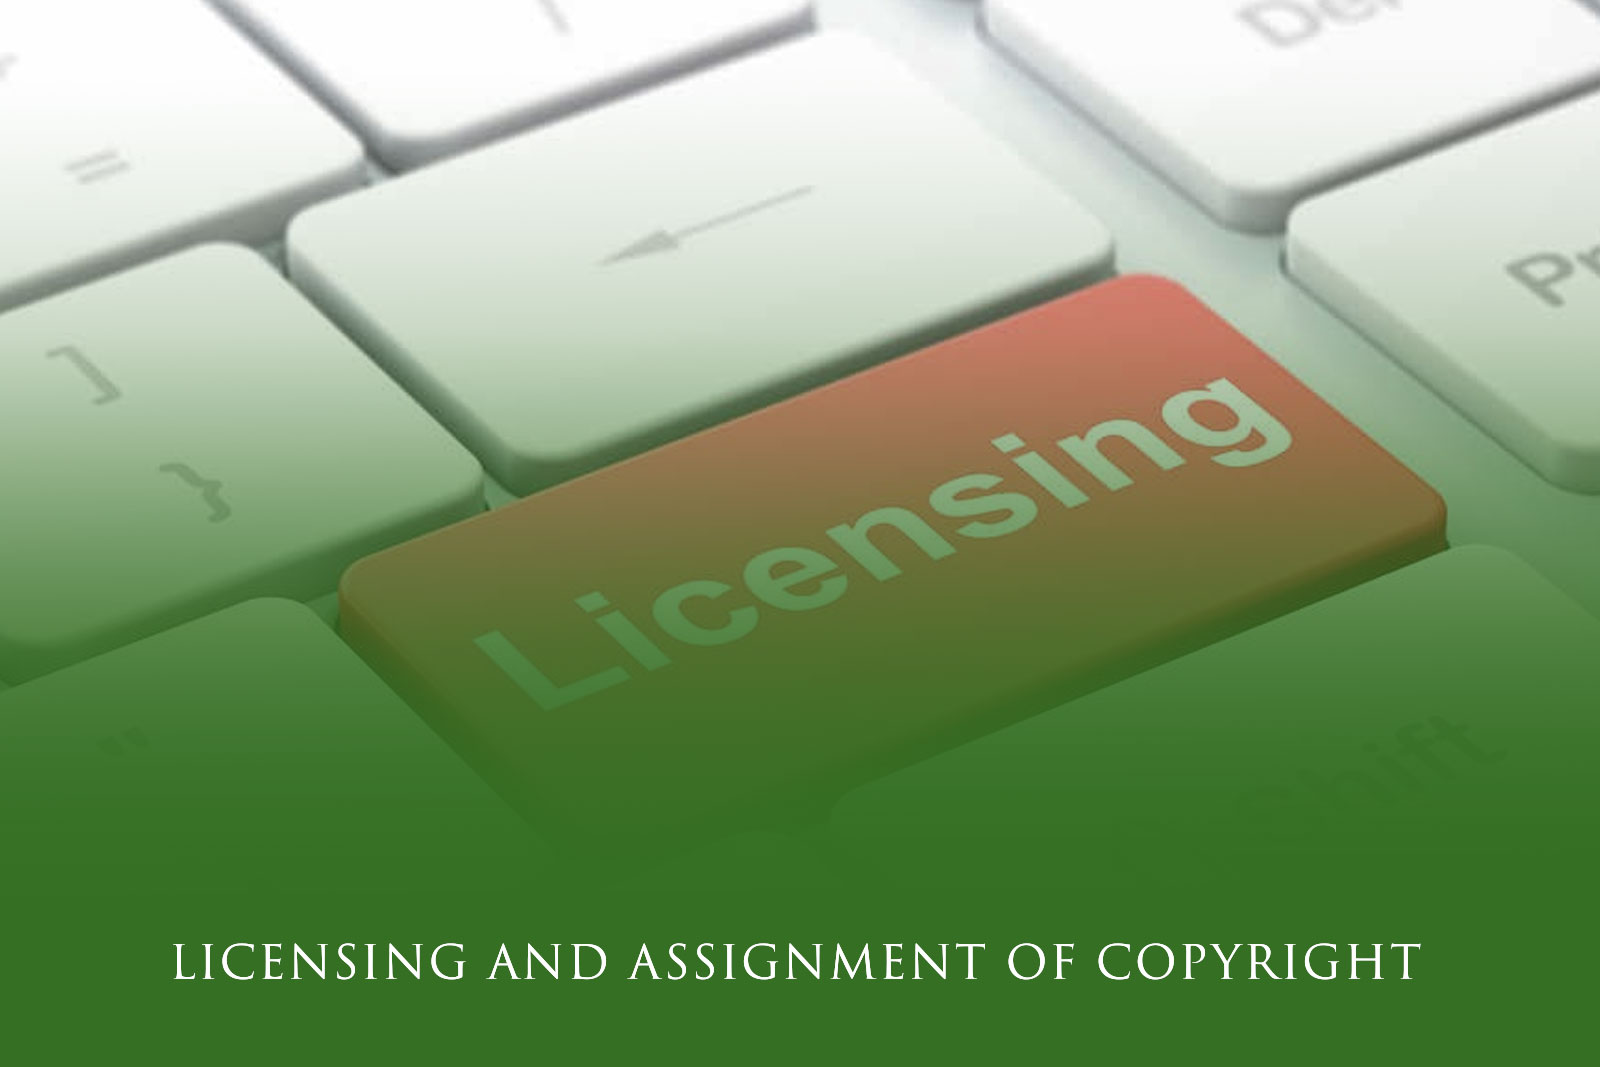 Licensing and Assignment of Copyright